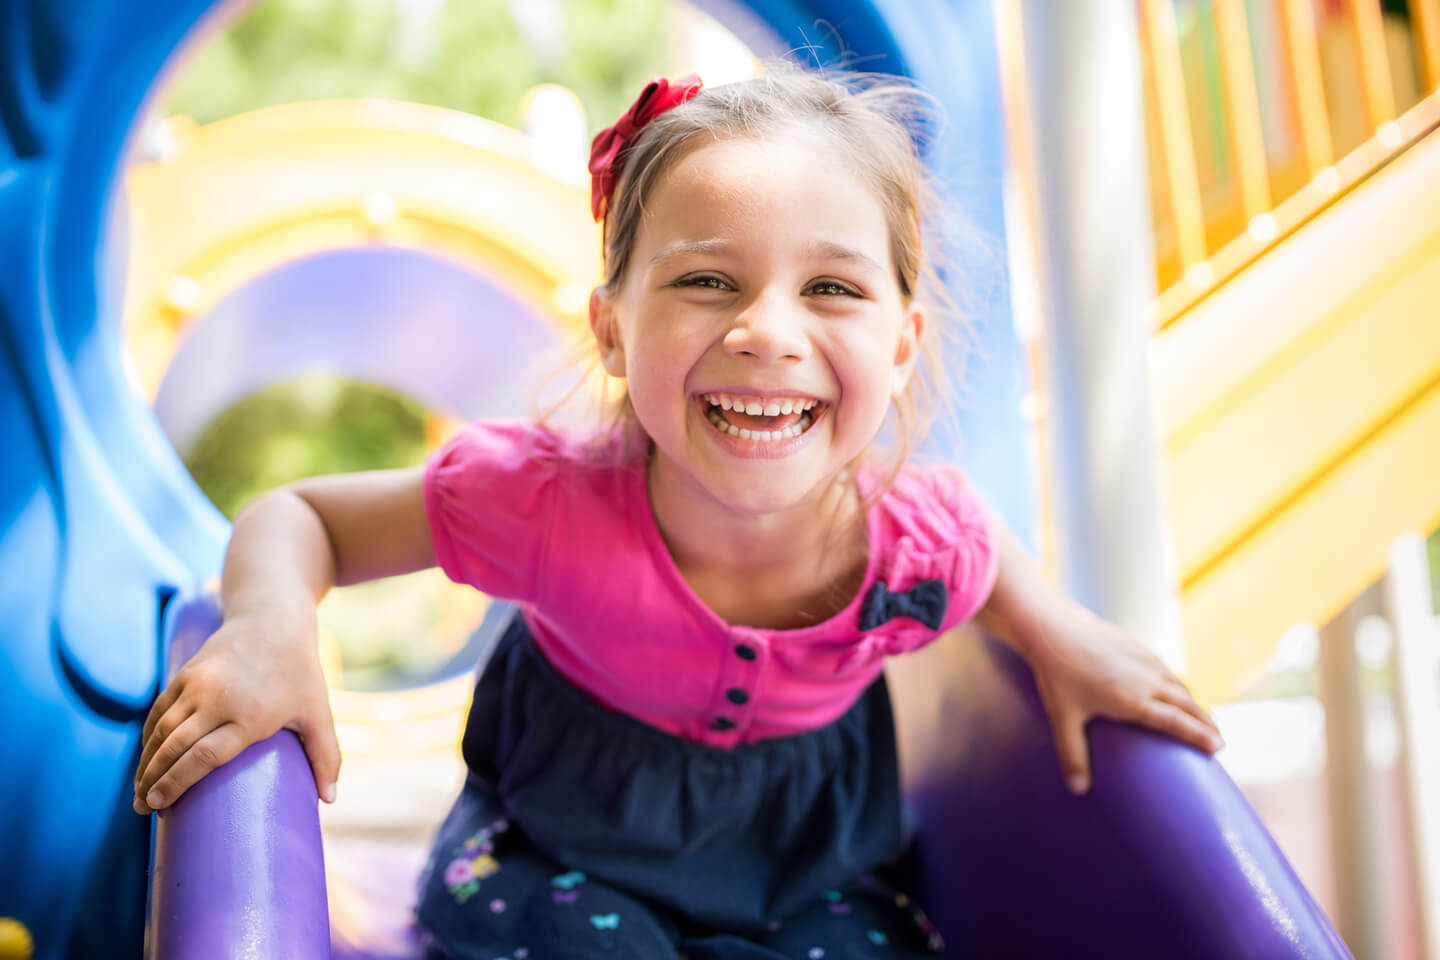 Young girl smiling while on a playground slide at a childcare center in the St George area of Sydney